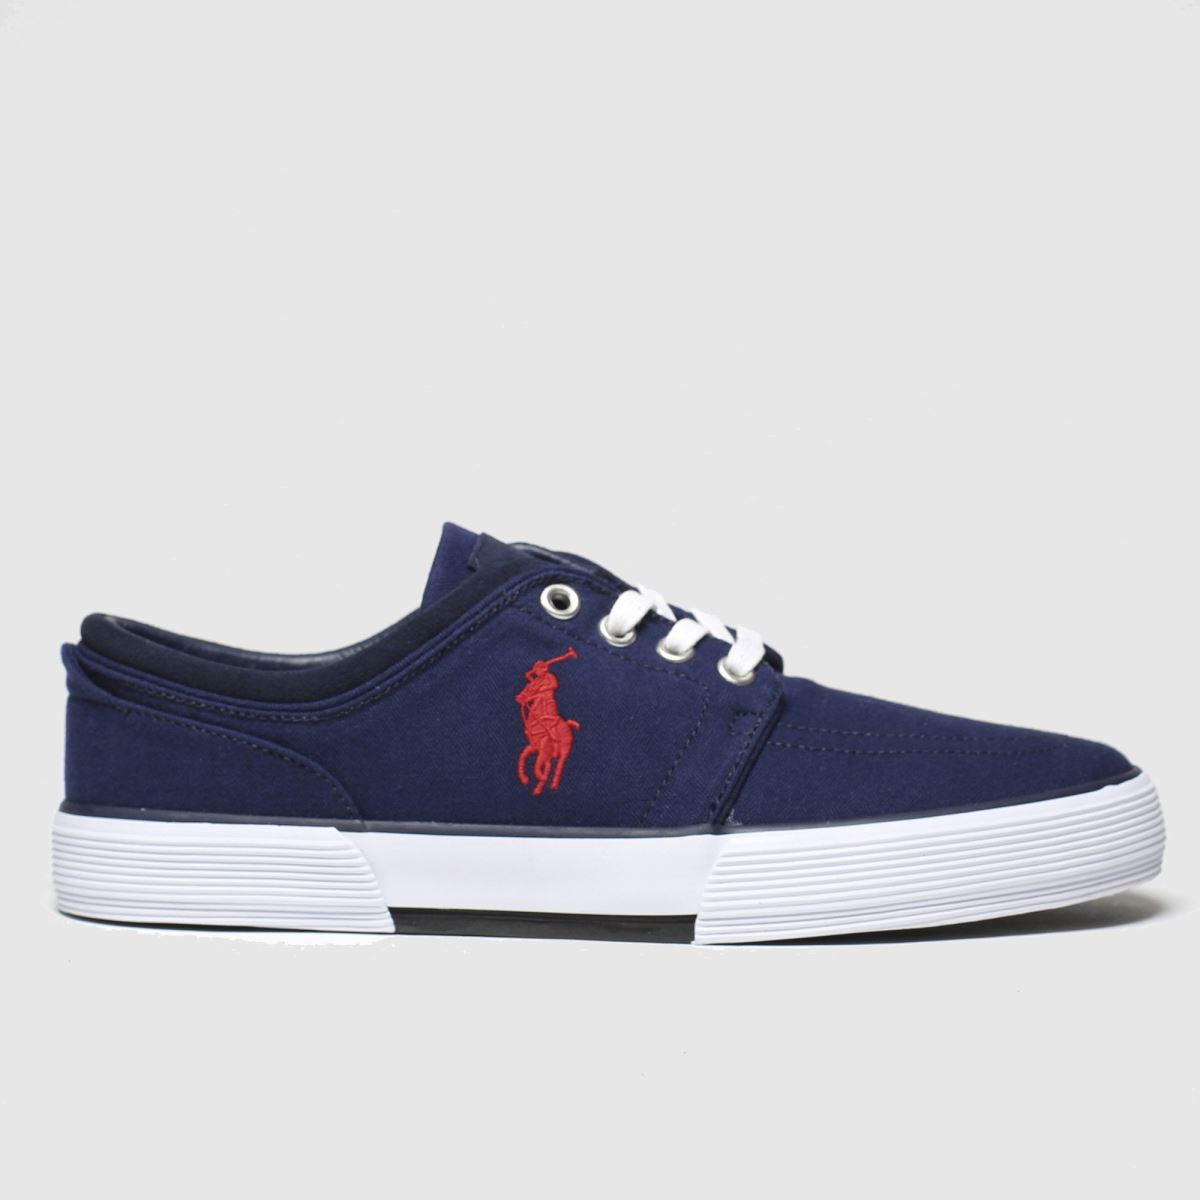 Polo Ralph Lauren Navy & Red Faxon Low Trainers